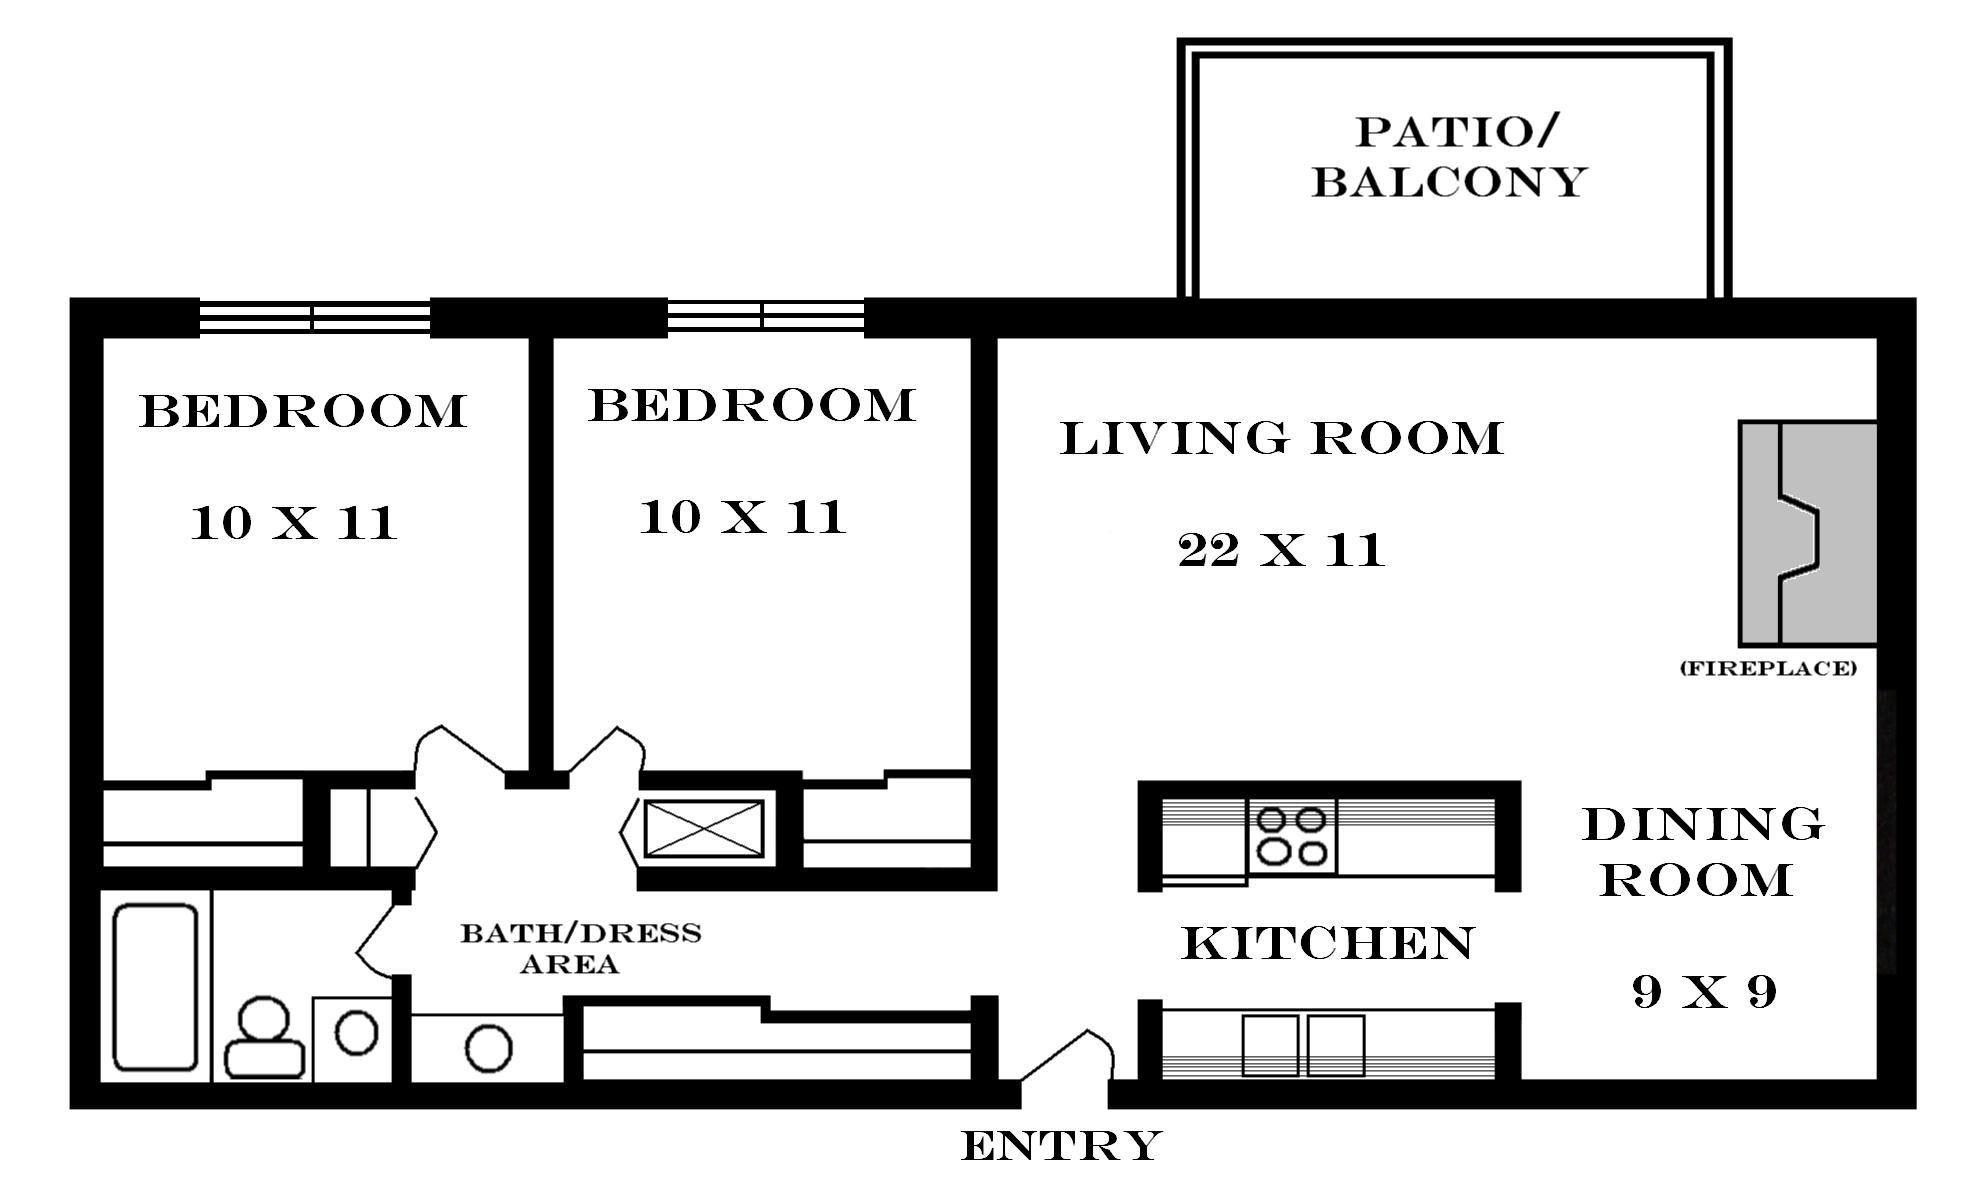 small house floor plans 2 bedrooms 900 tiny houses On floor plans 2 bedroom